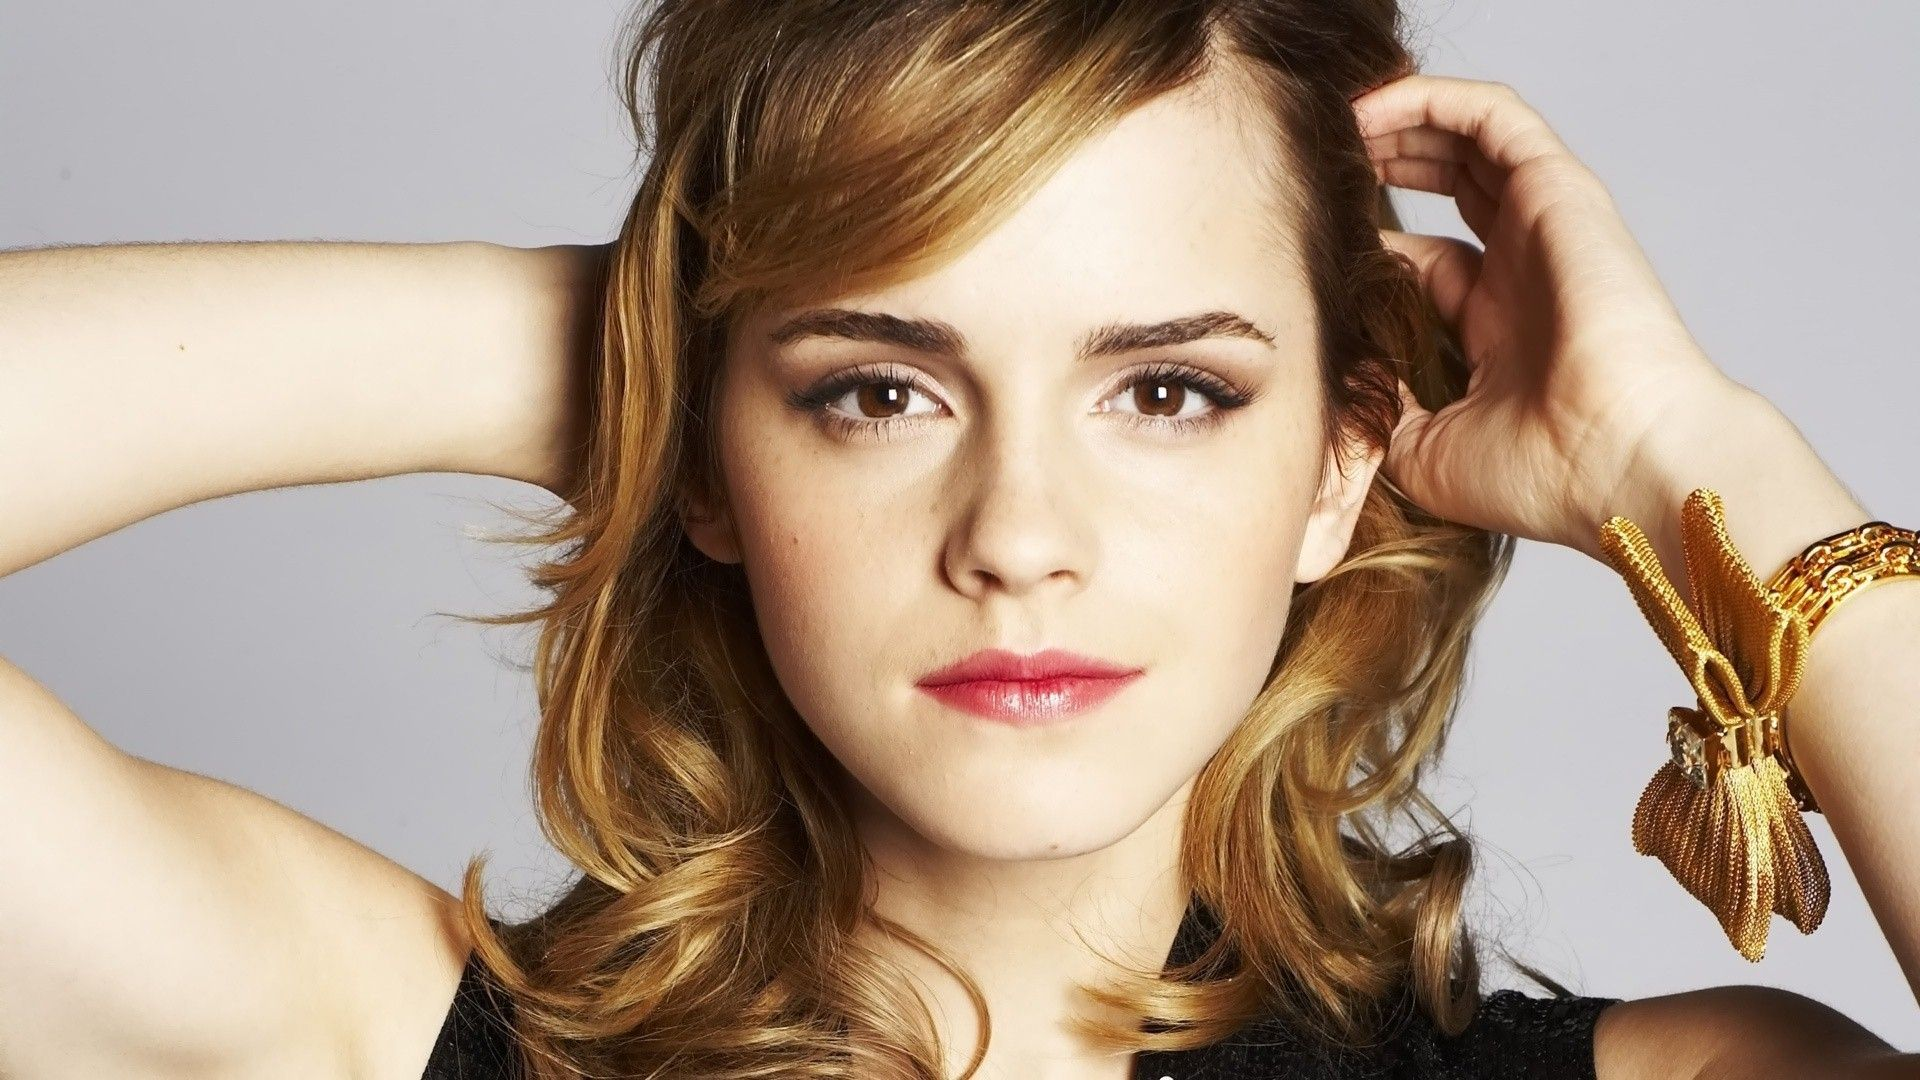 Wallpaper download hot - Emma Watson Wallpapers Free Download Hd Hot Beautiful Actress Images